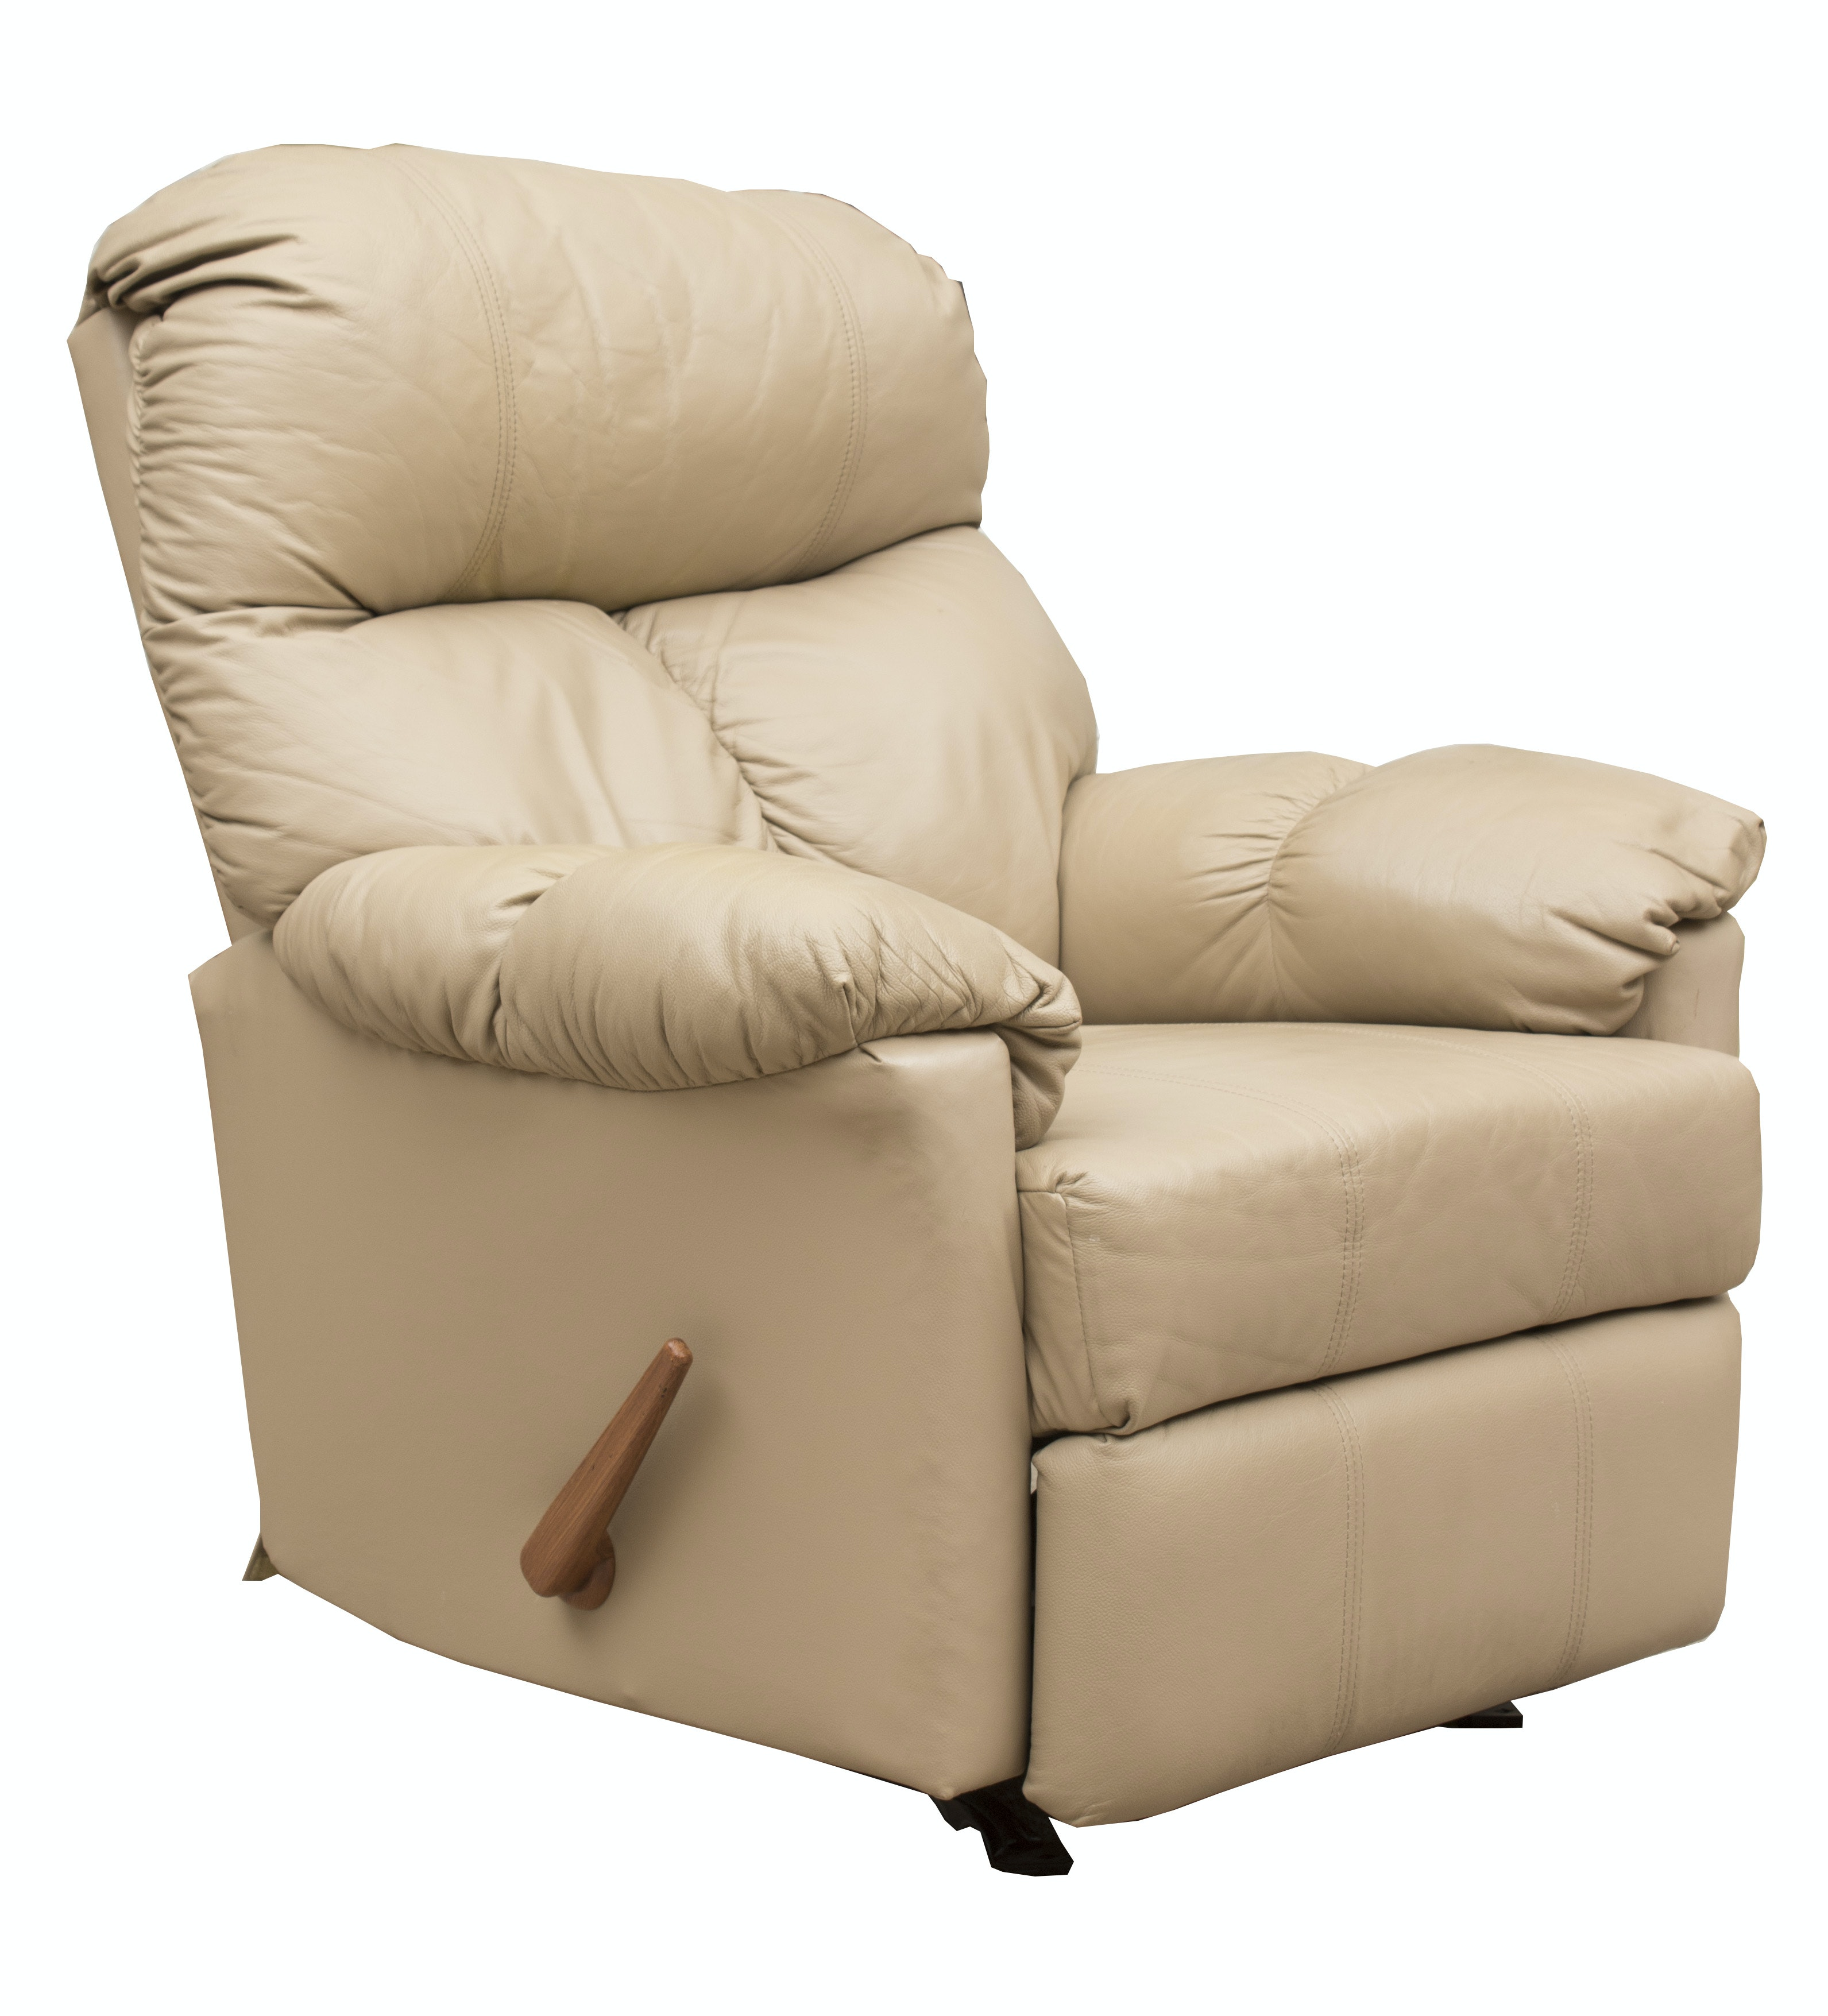 Plush Leather Recliner